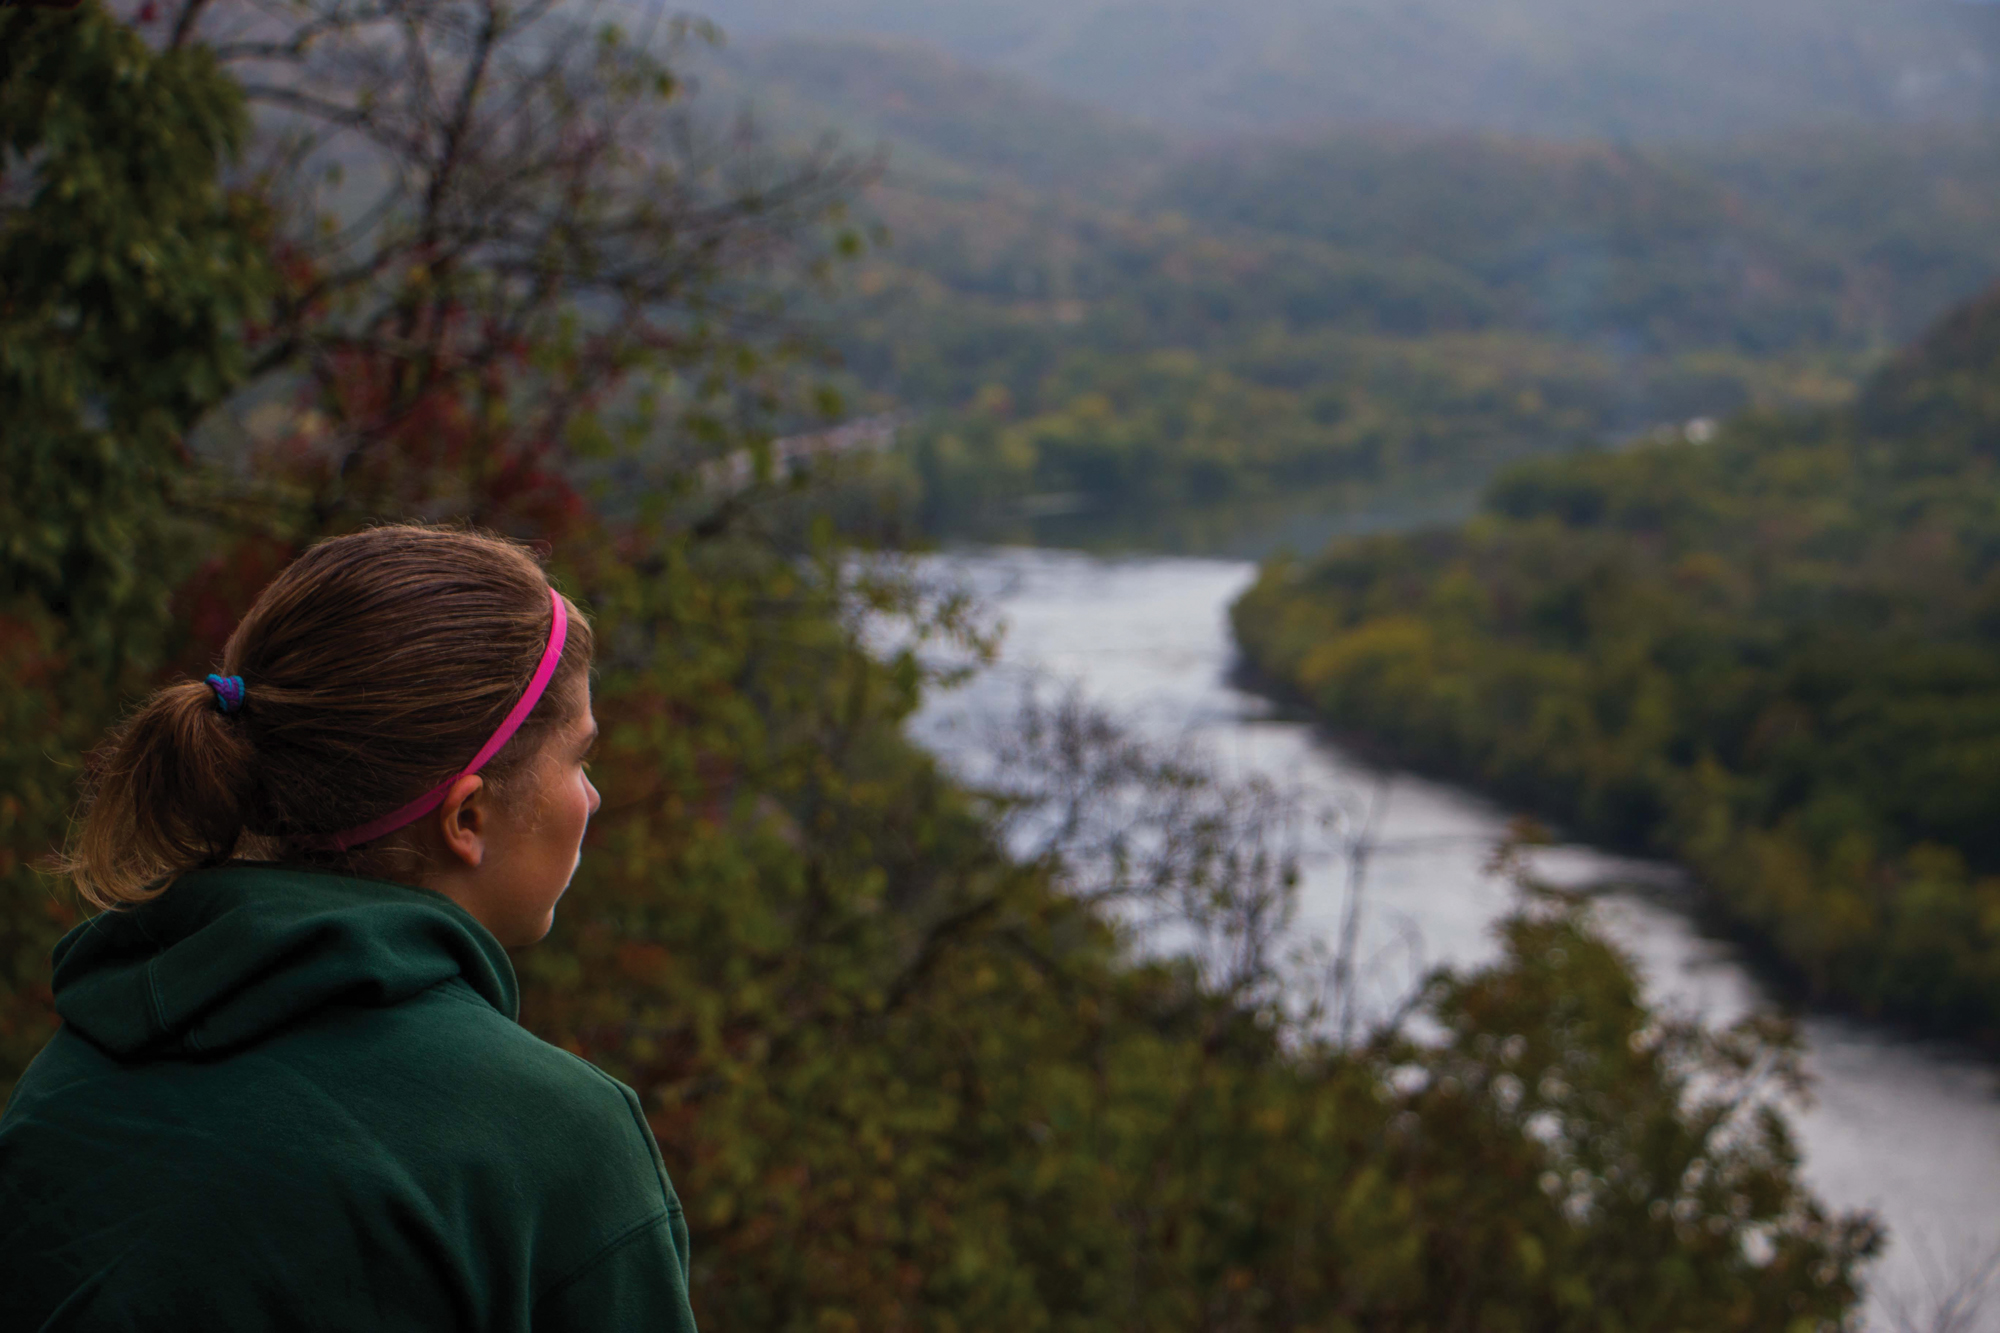 A female student looks out over a vista of forested mountains in West Virginia.